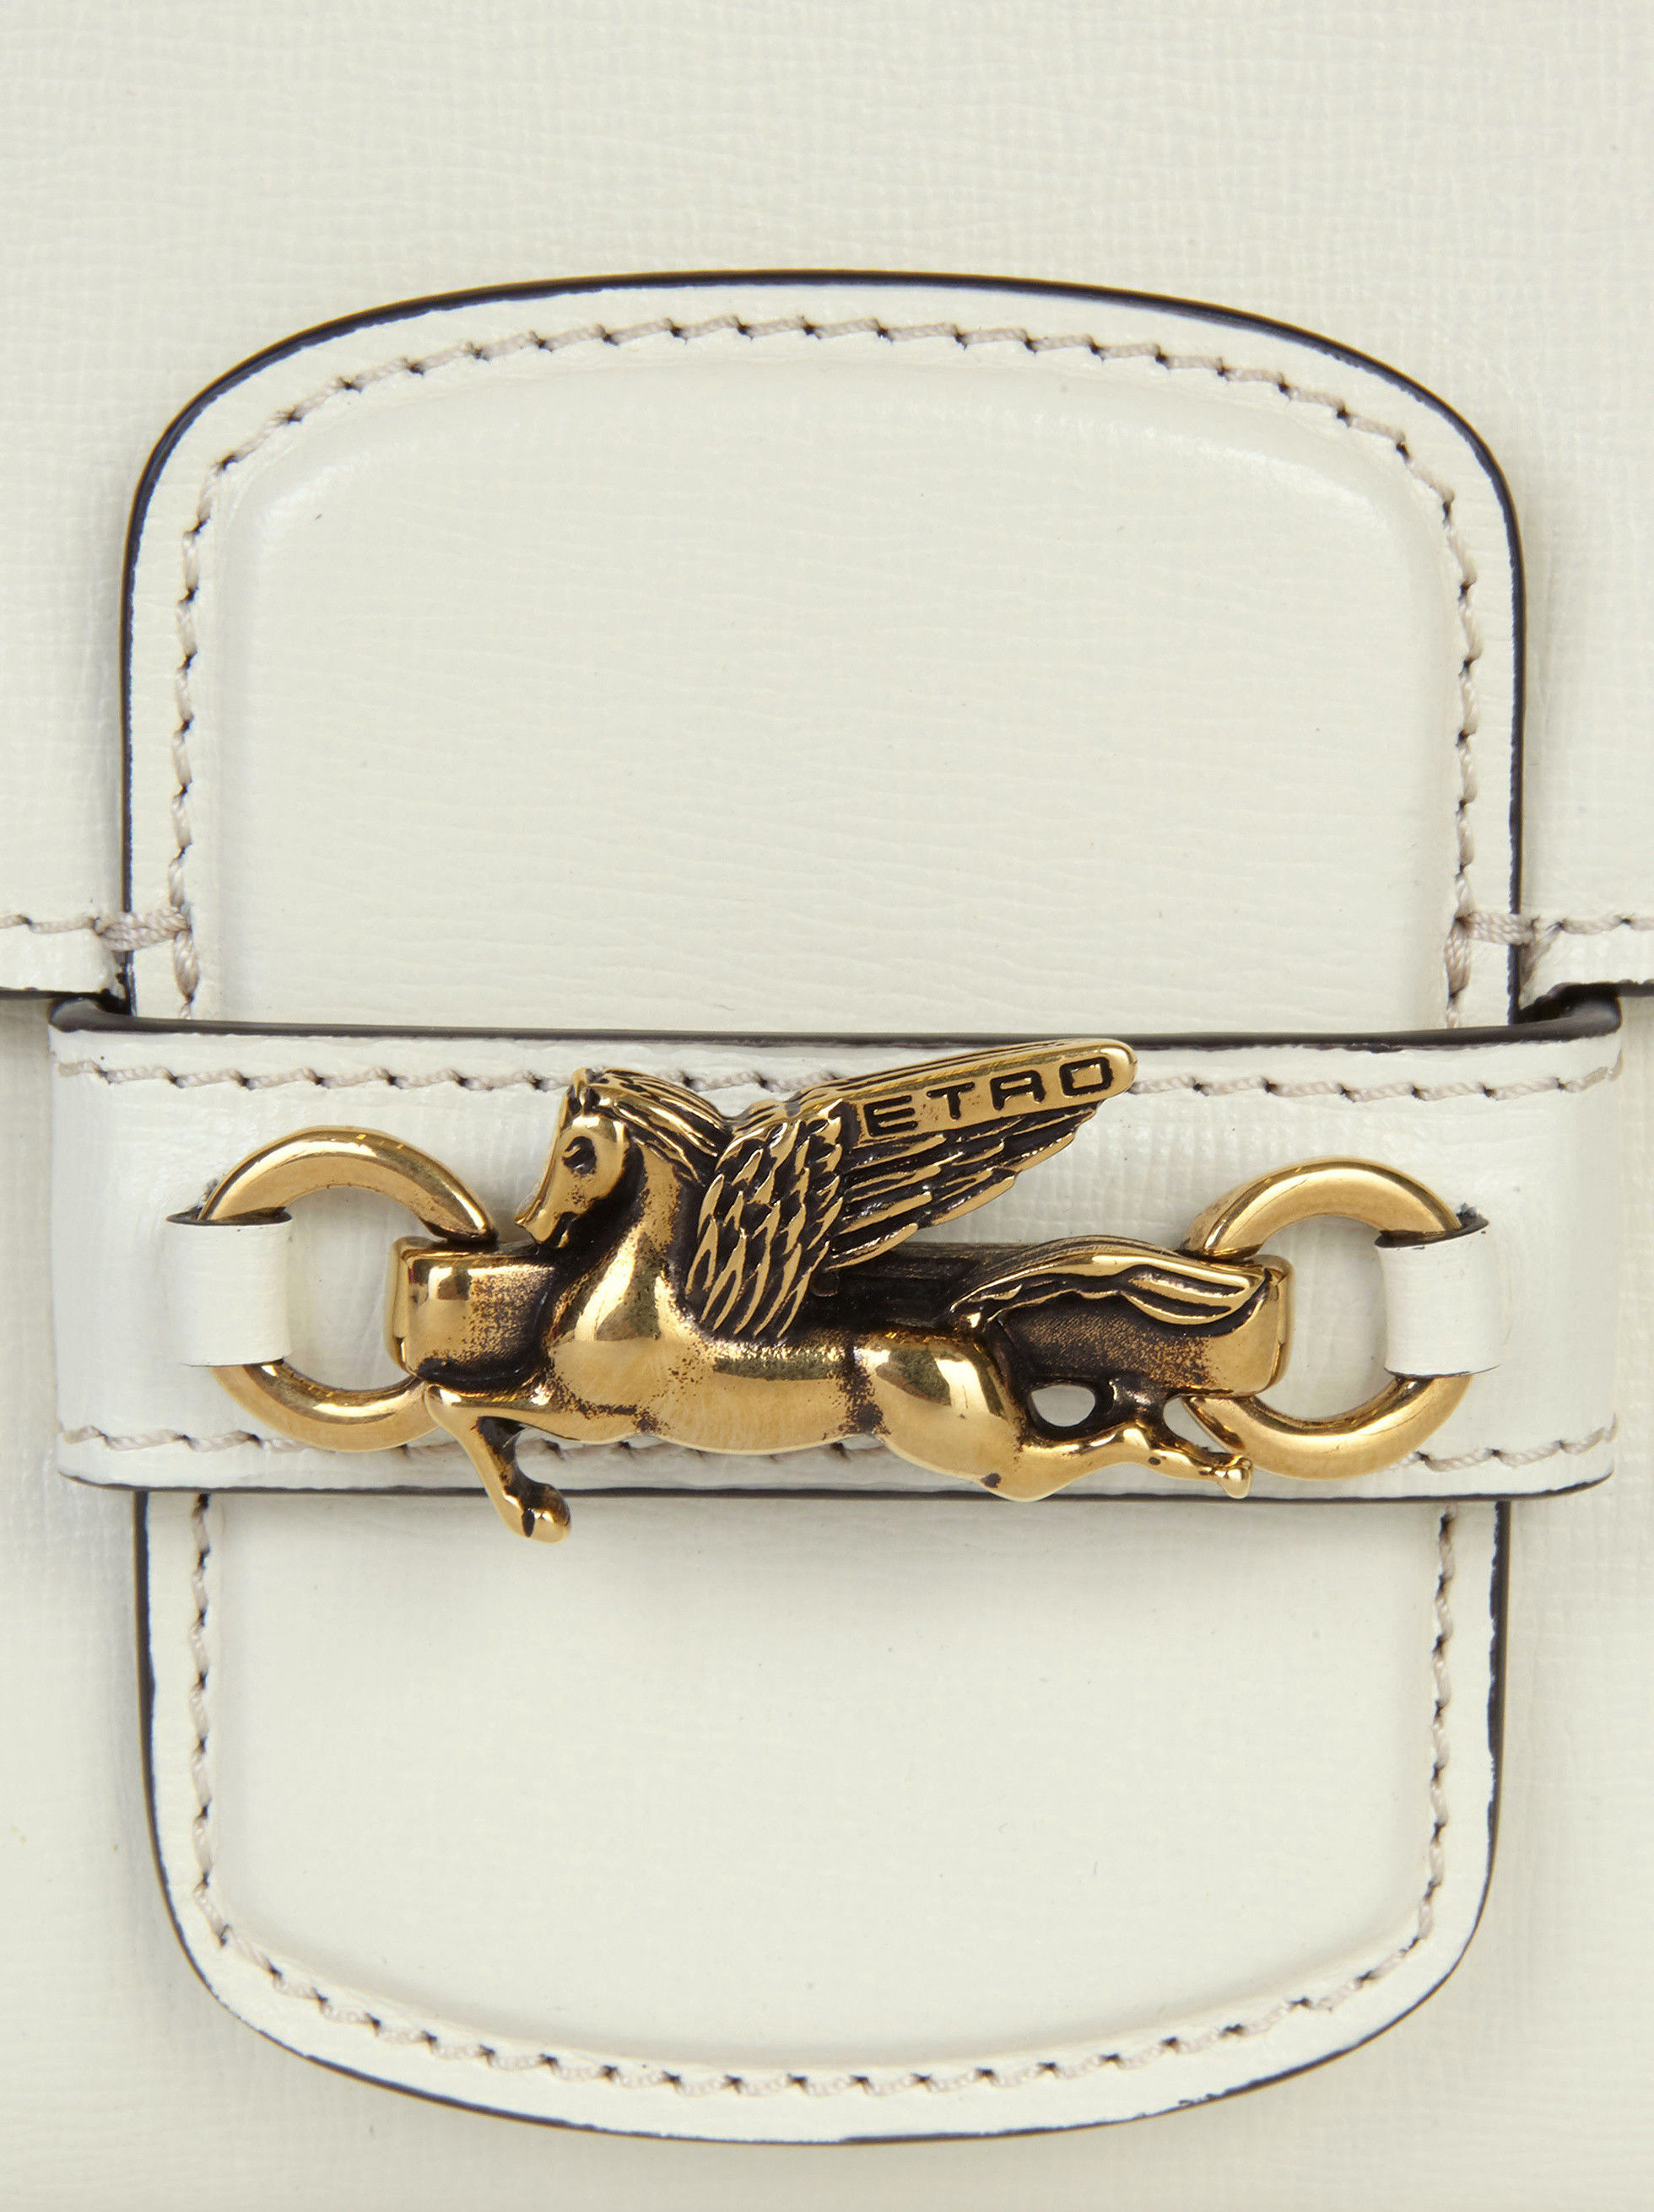 SHOULDER BAG WITH PEGASO